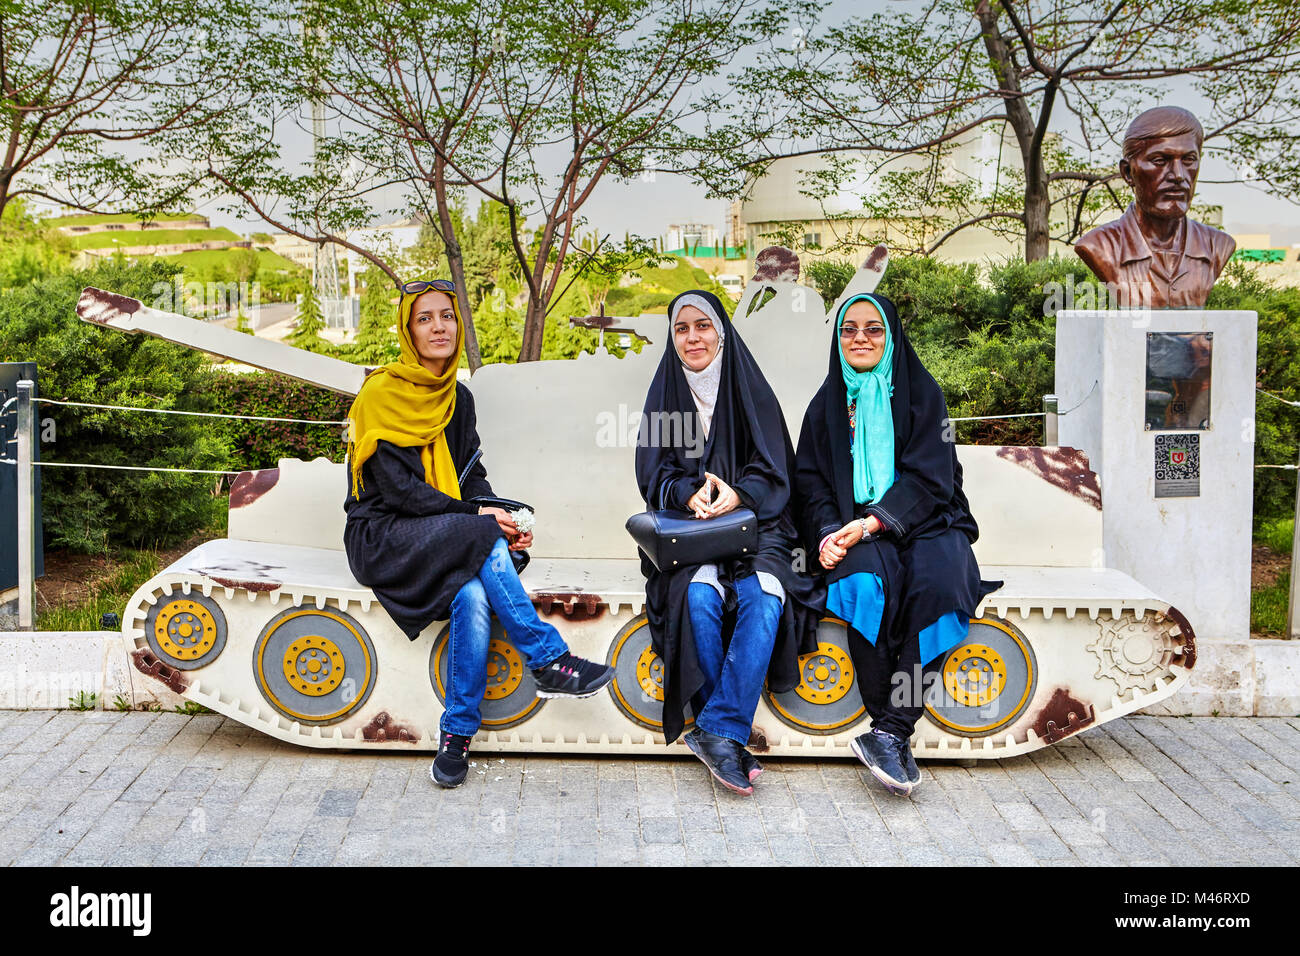 Tehran, Iran - April 28, 2017: Three young Iranian girls in hijabs are sitting on the breadboard model of the tank - Stock Image